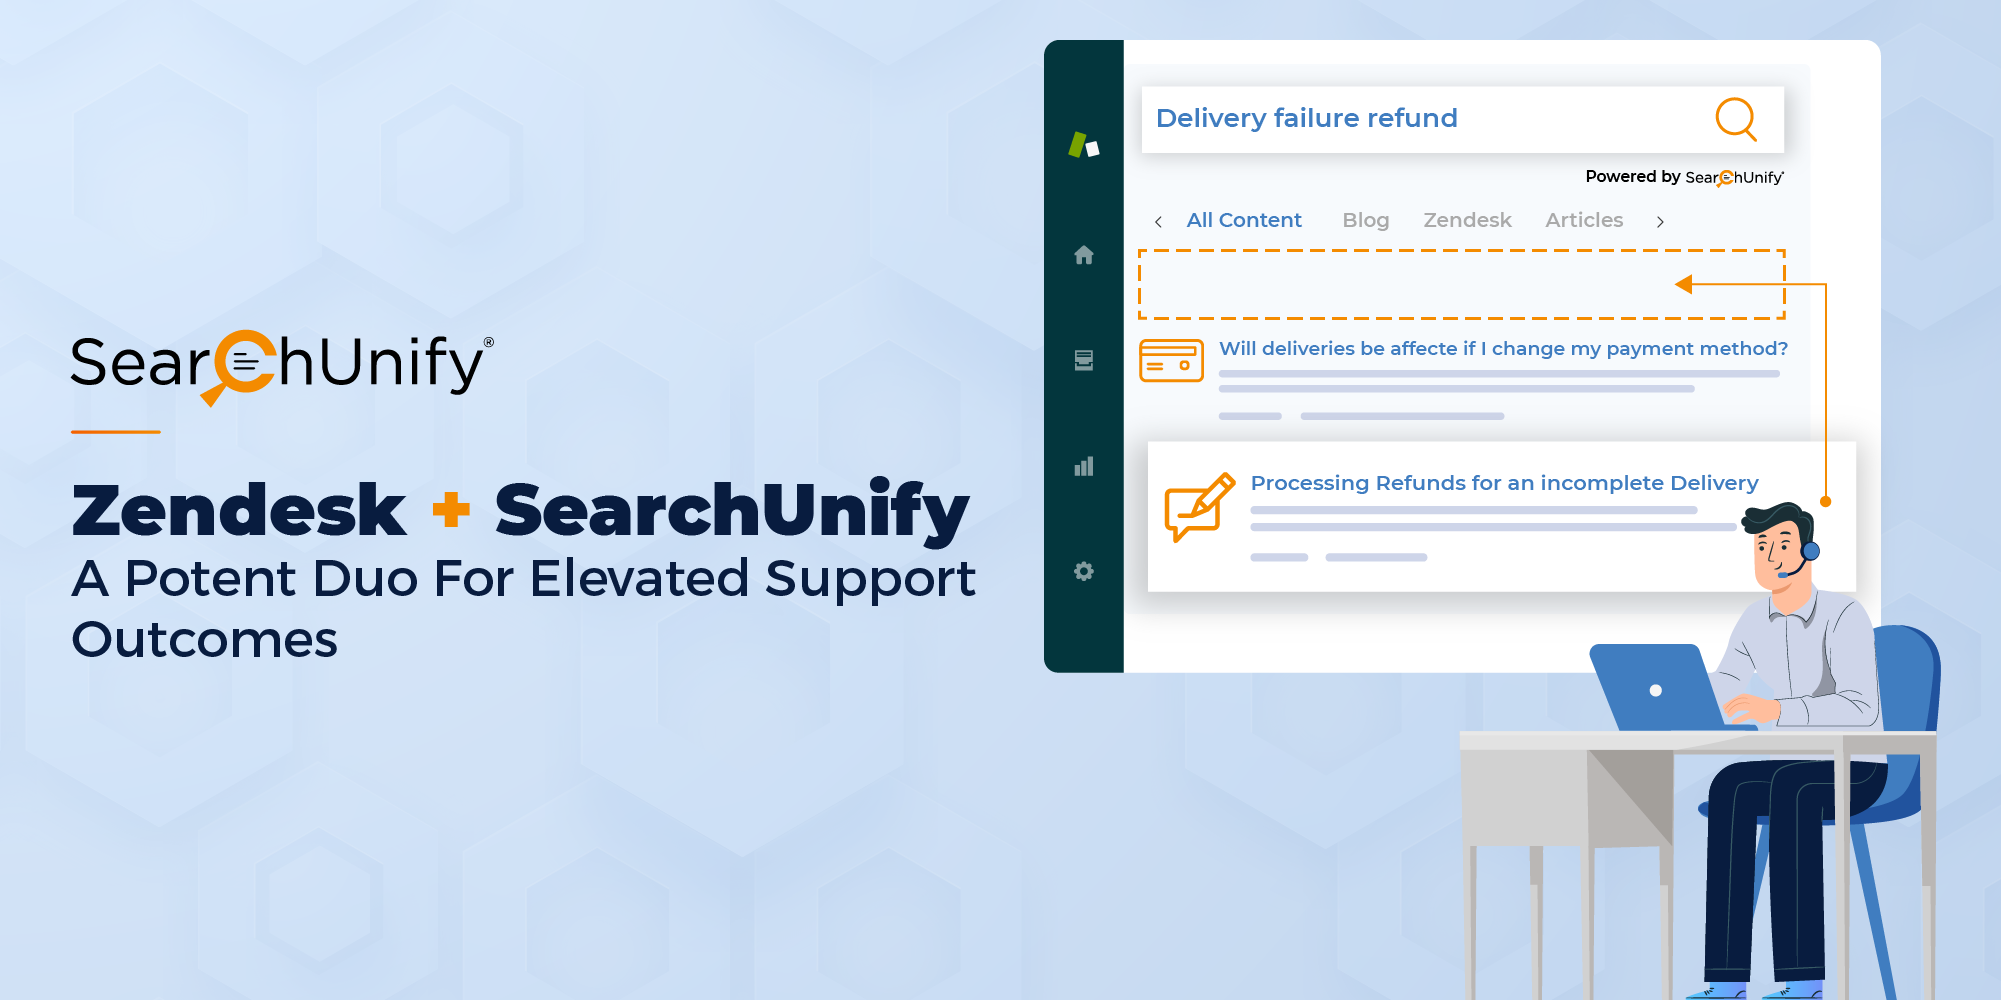 Zendesk + SearchUnify: A Potent Duo For Elevated Support Outcomes